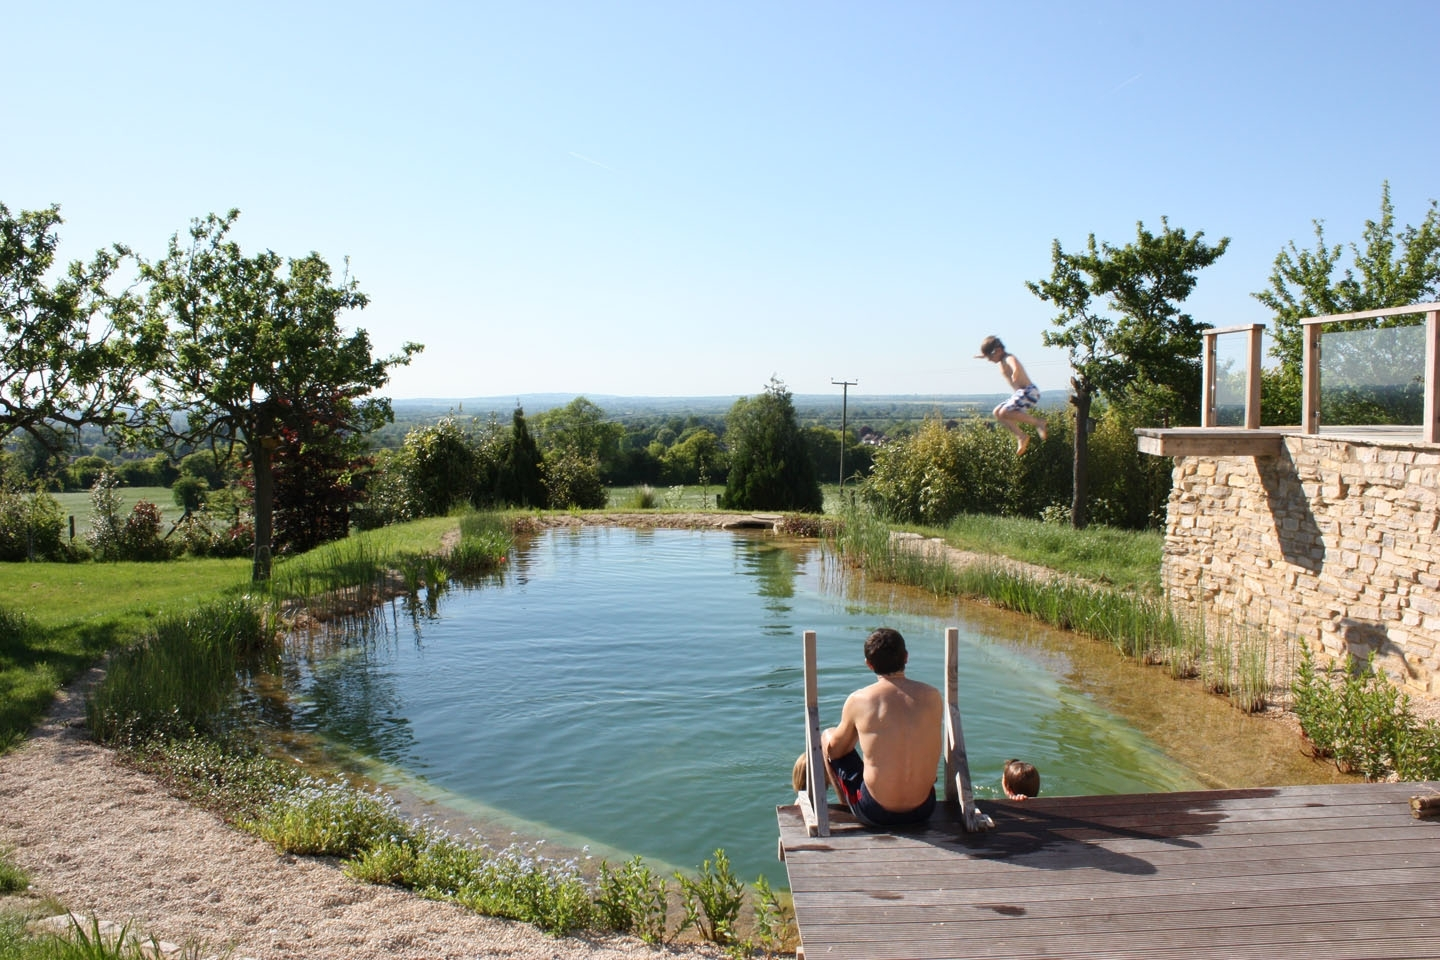 Gartenart | Portfolio | Swimming pond, Buckinghamshire